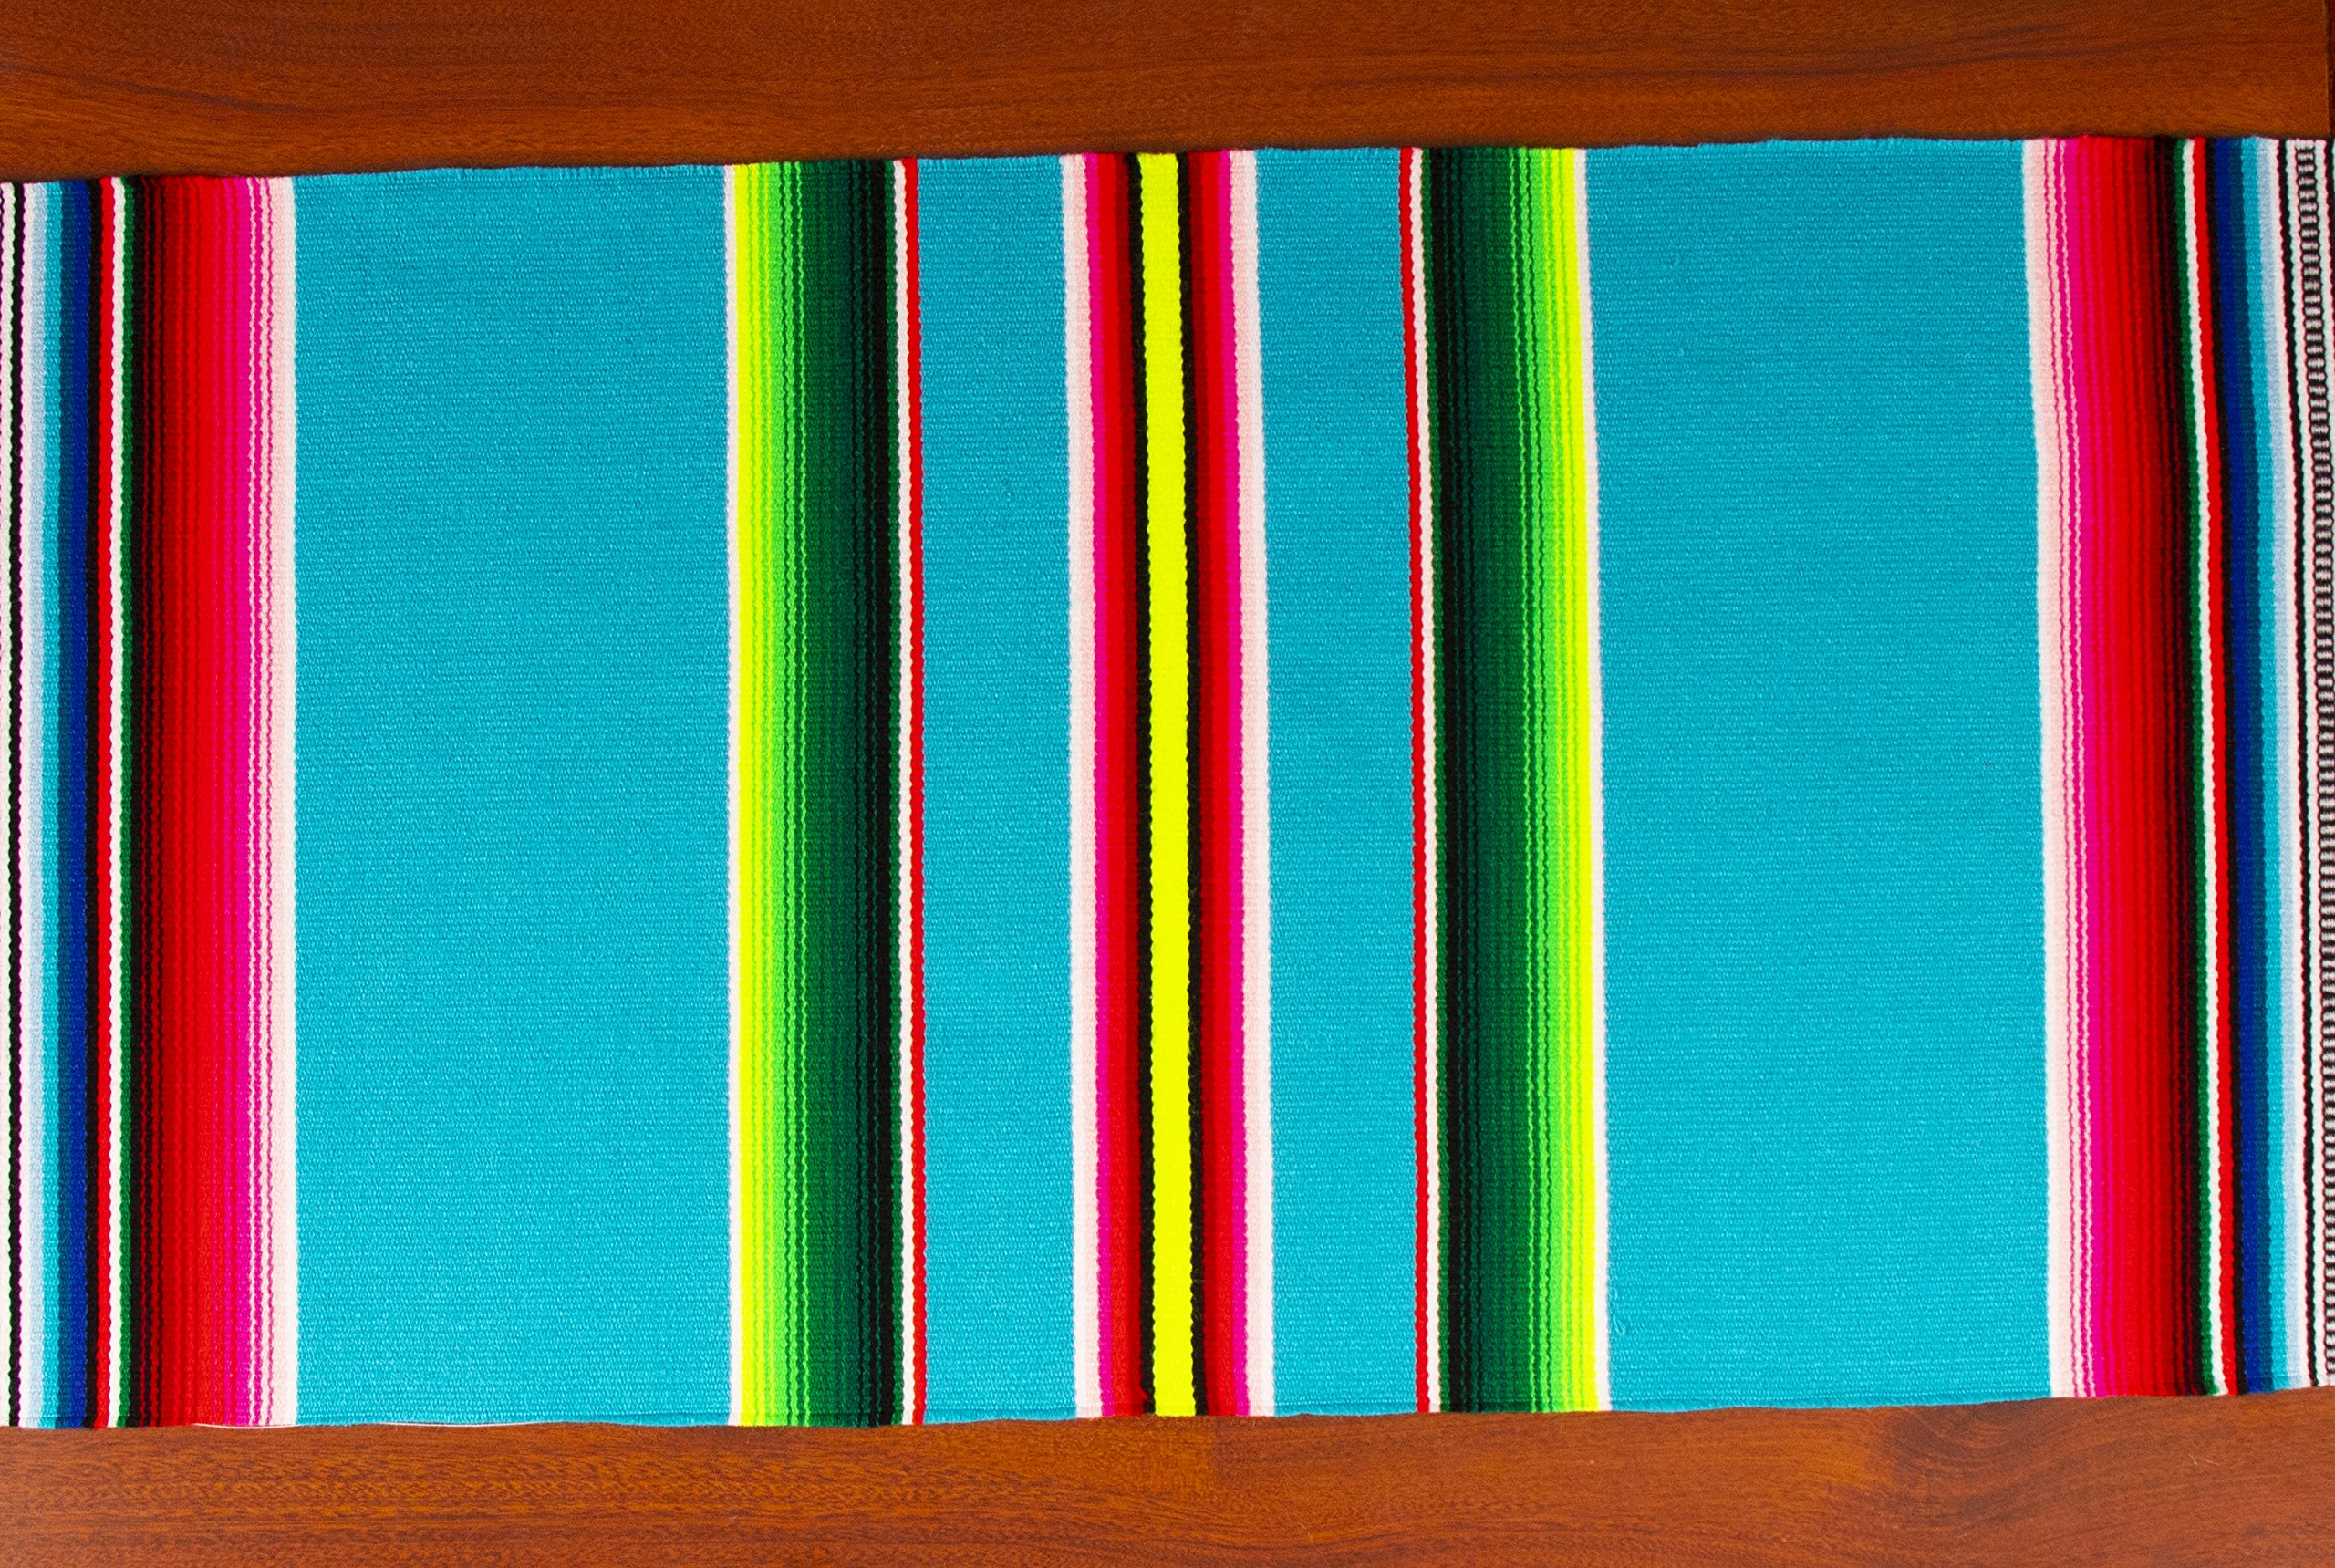 Genuine Mexican Premium Handwoven Bright MexicanTable Runner Saltillo Serape Colorful Striped Sarape 60'' x 12'' (Turquoise) by Threads West (Image #4)